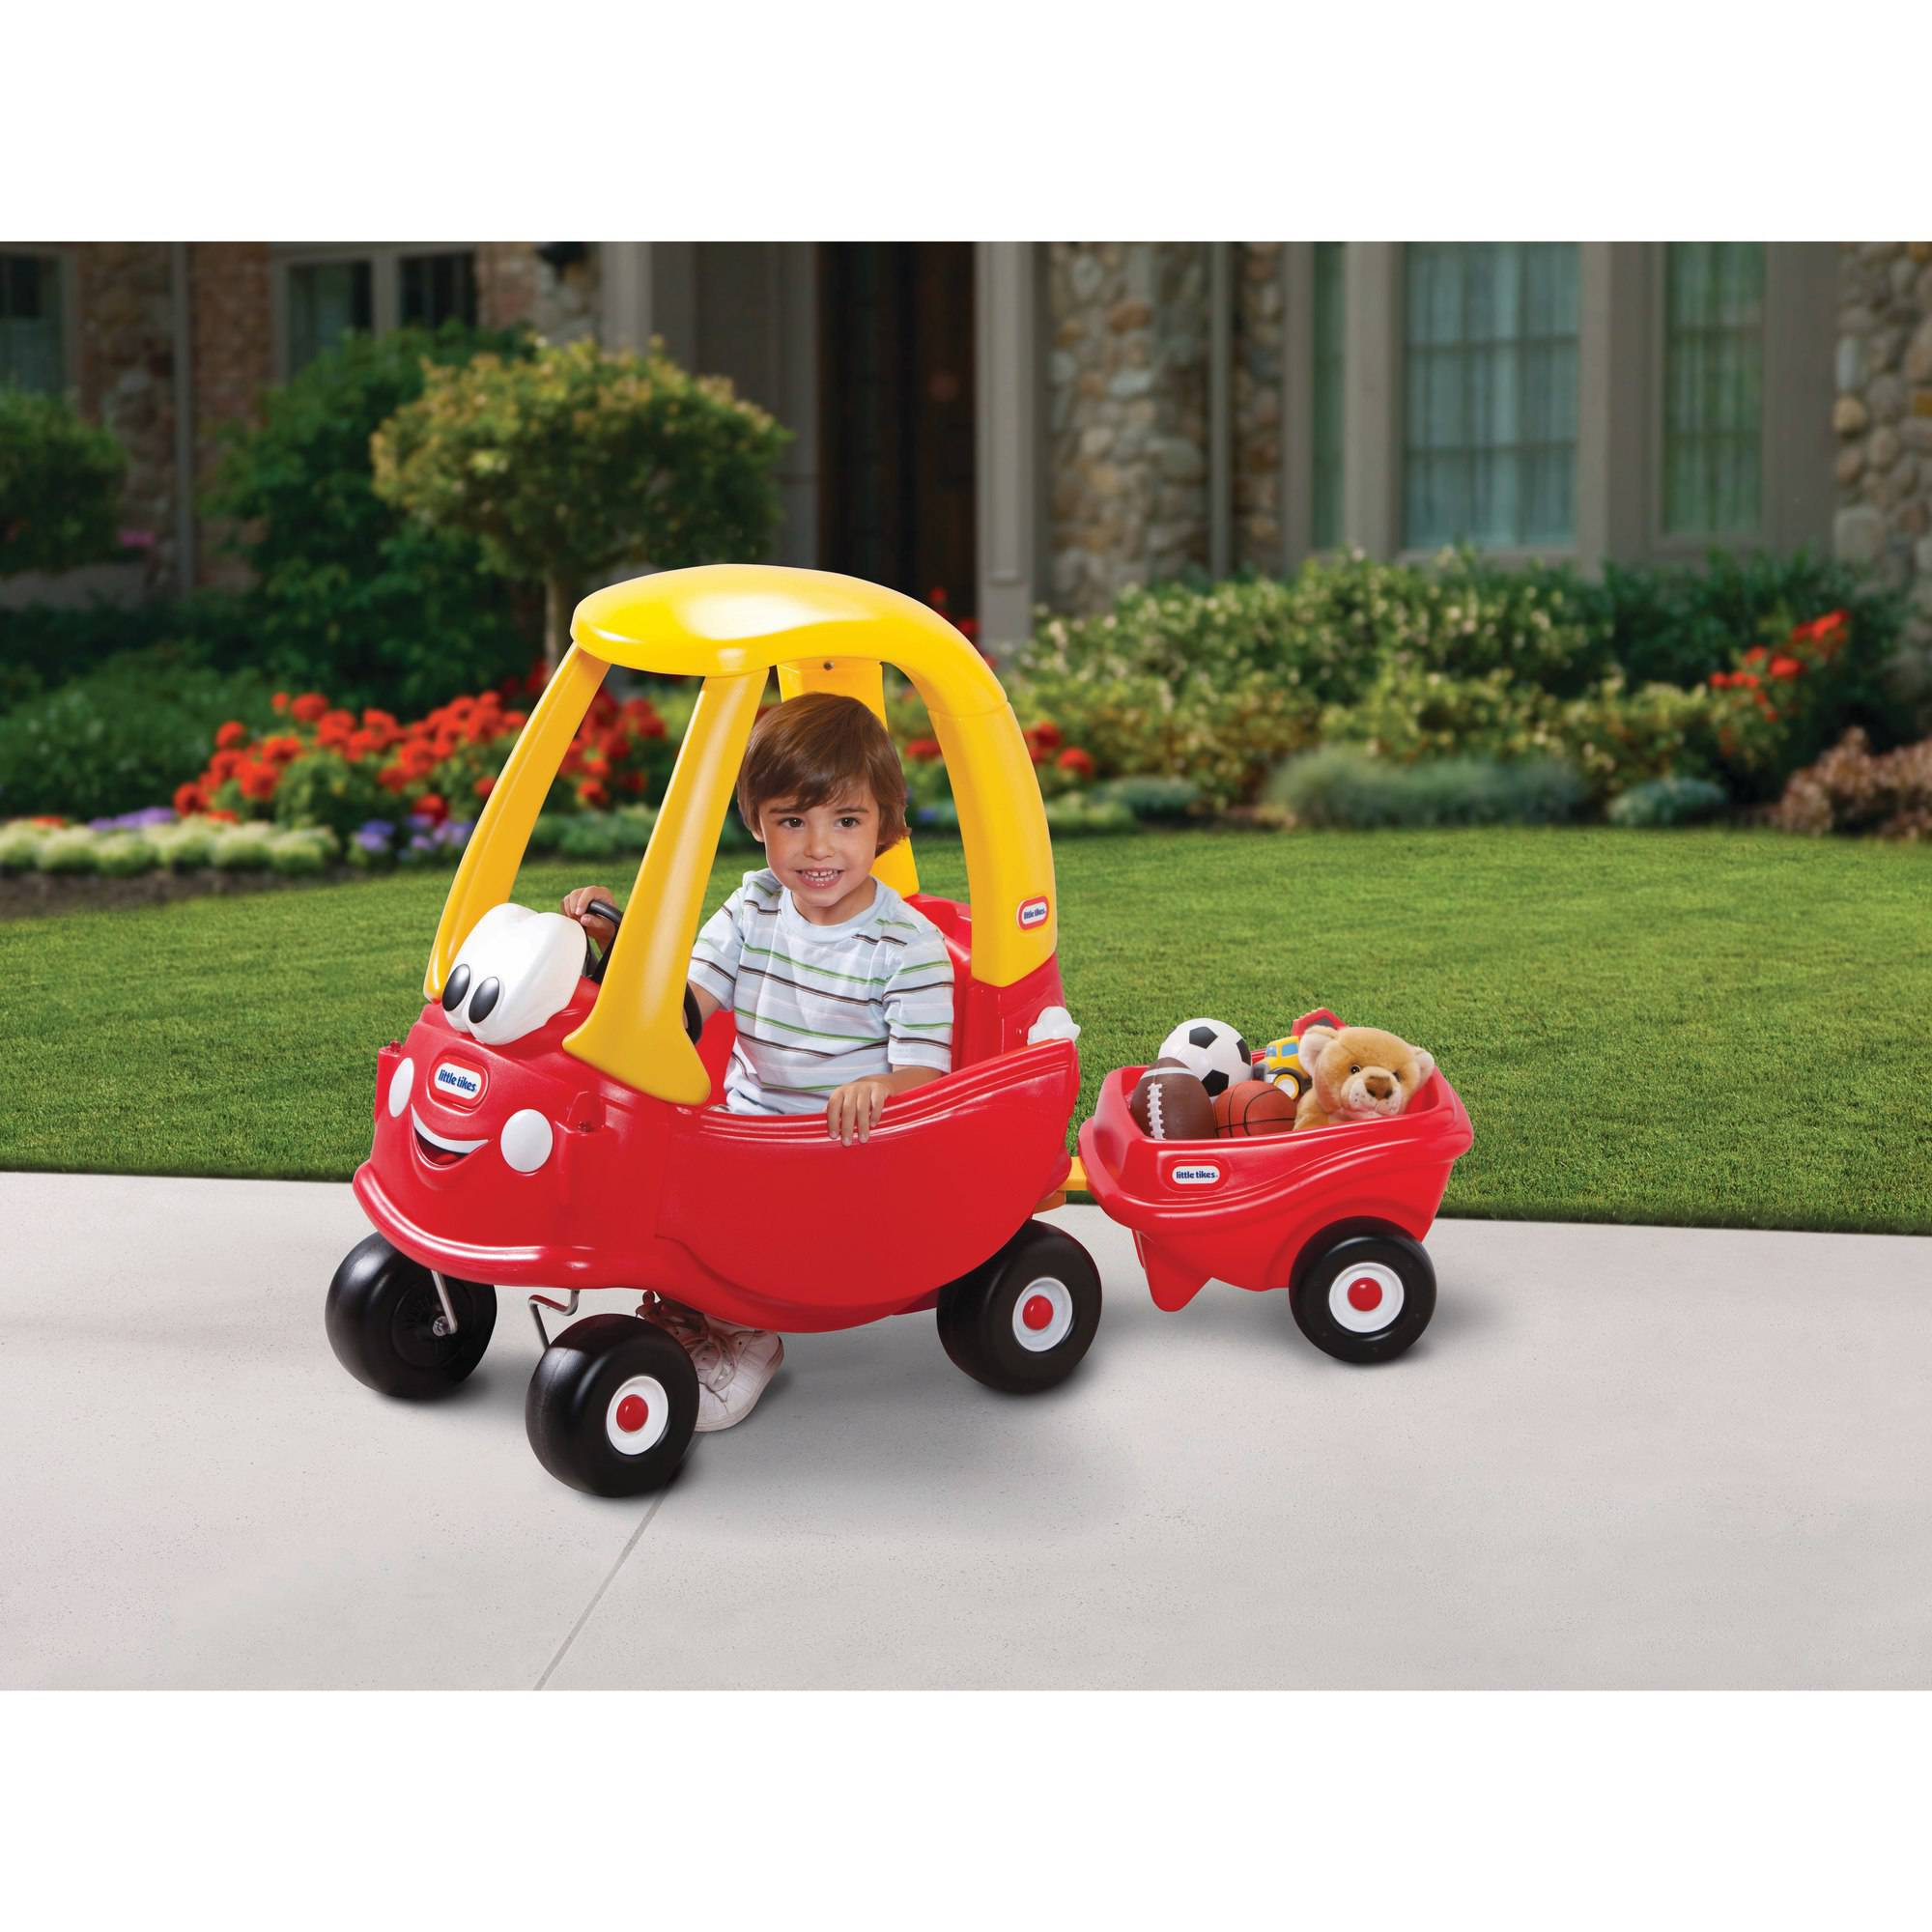 Little Tikes Cozy Coupe 30th Anniversary with Cozy Coupe Trailer